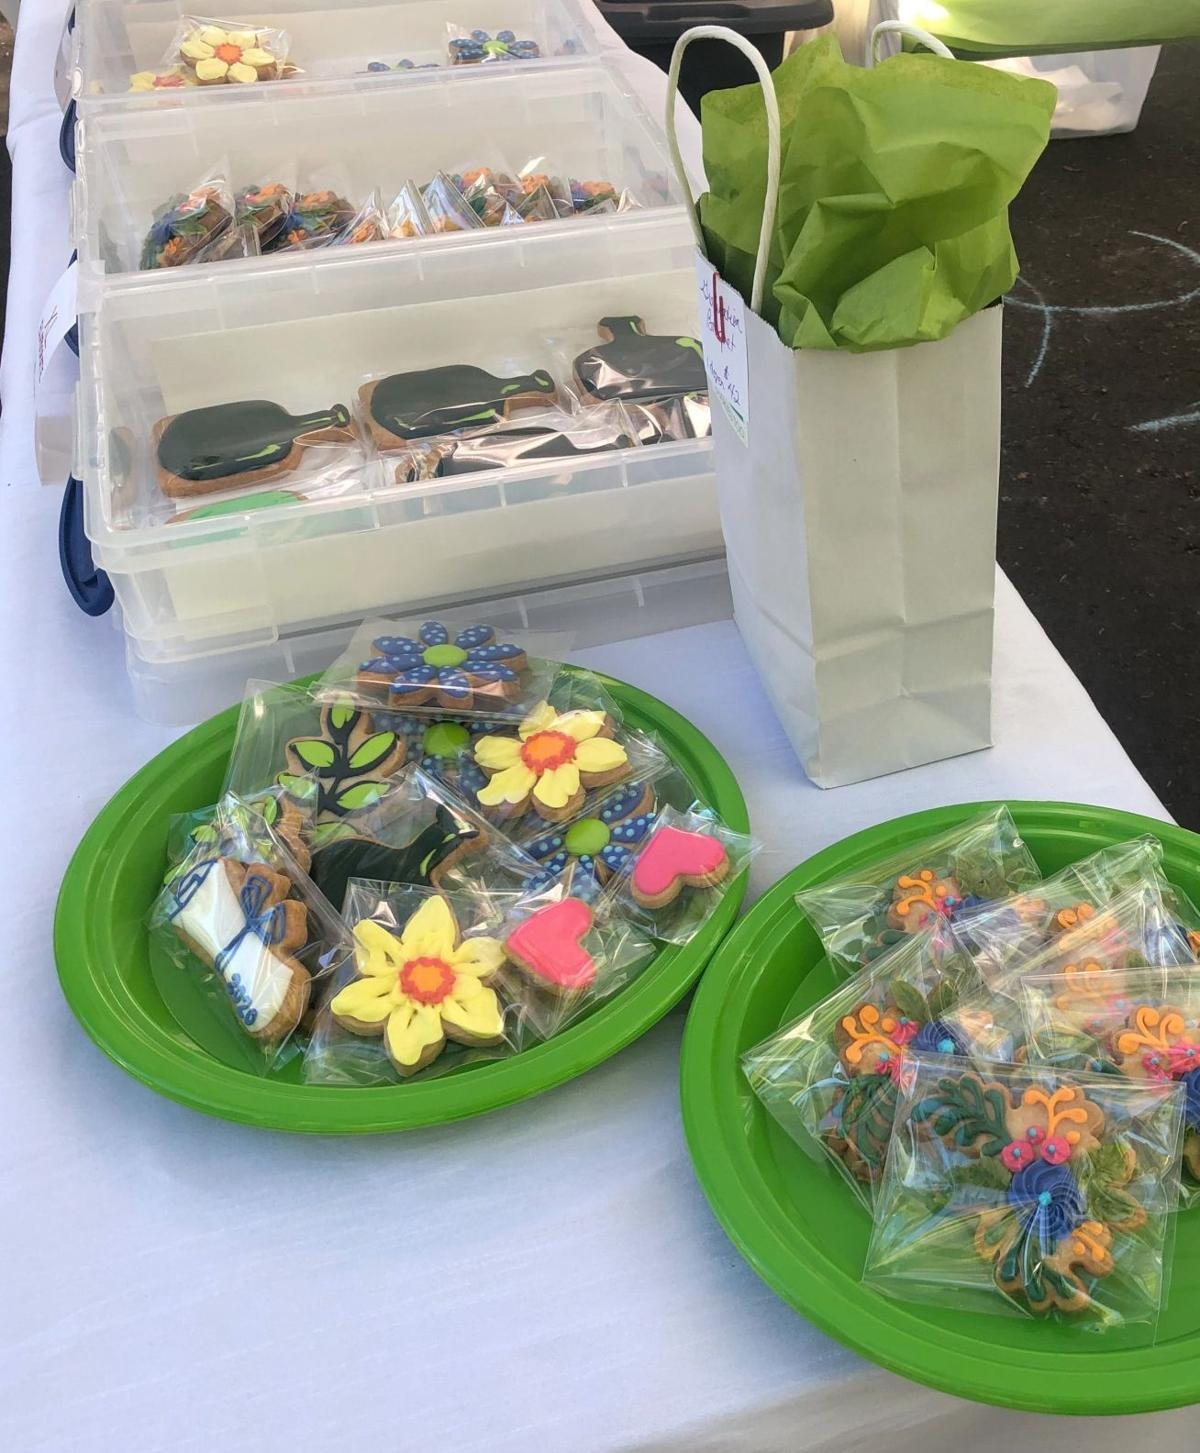 Cookies, Too can be found at the St. Helena Farmers' Market